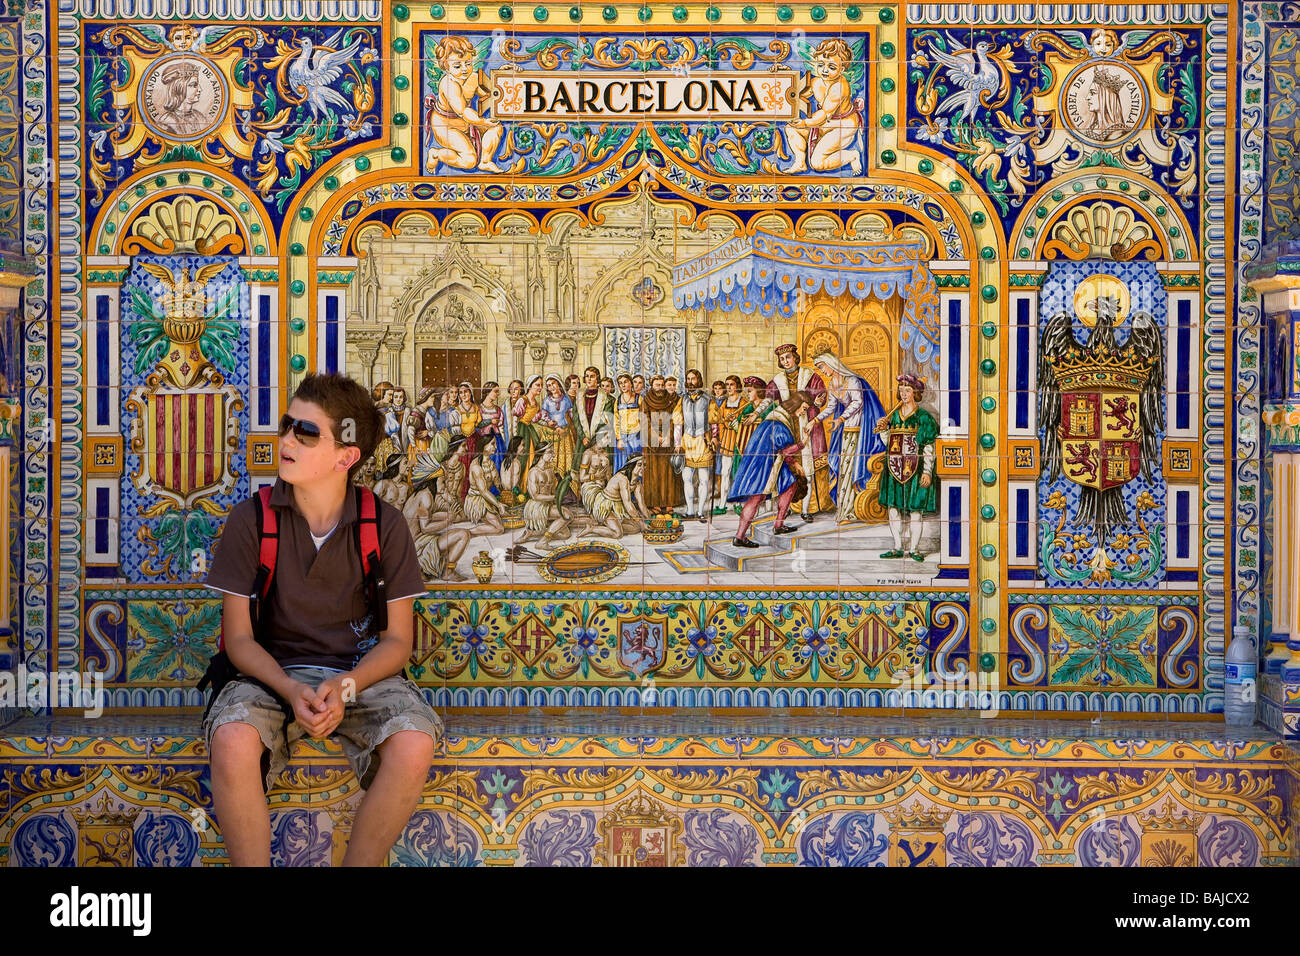 Spain, Andalusia, Seville, Plaza de Espana built by architect Anibal Gonzalez for the 1929 Spanish American Exhibition - Stock Image